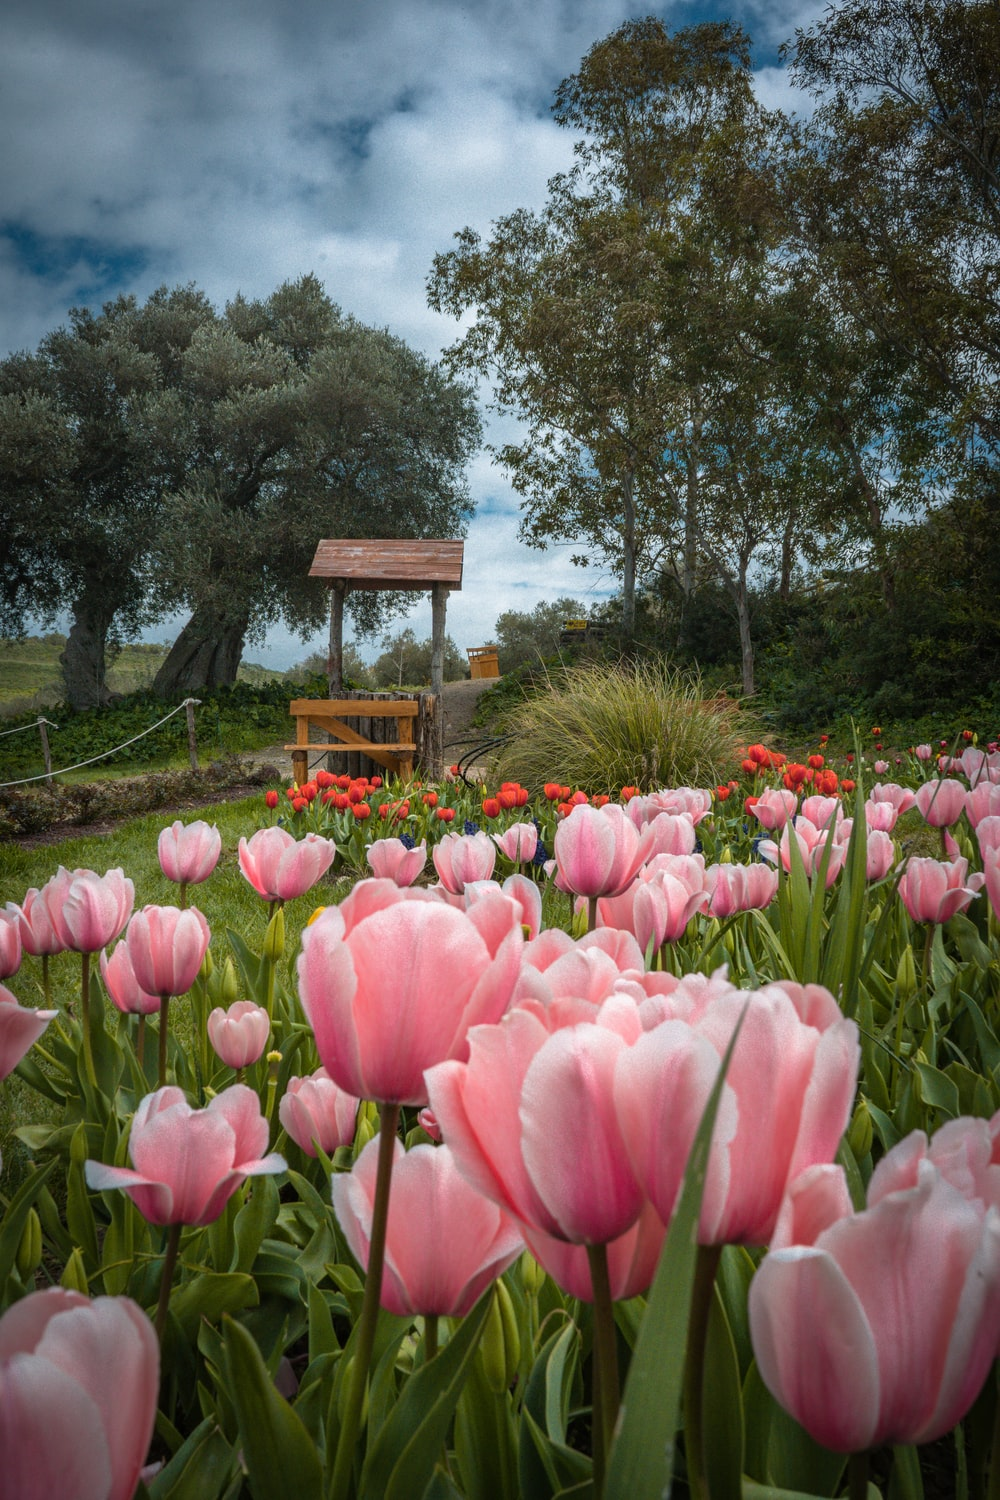 pink tulips near brown wooden bench under blue sky during daytime